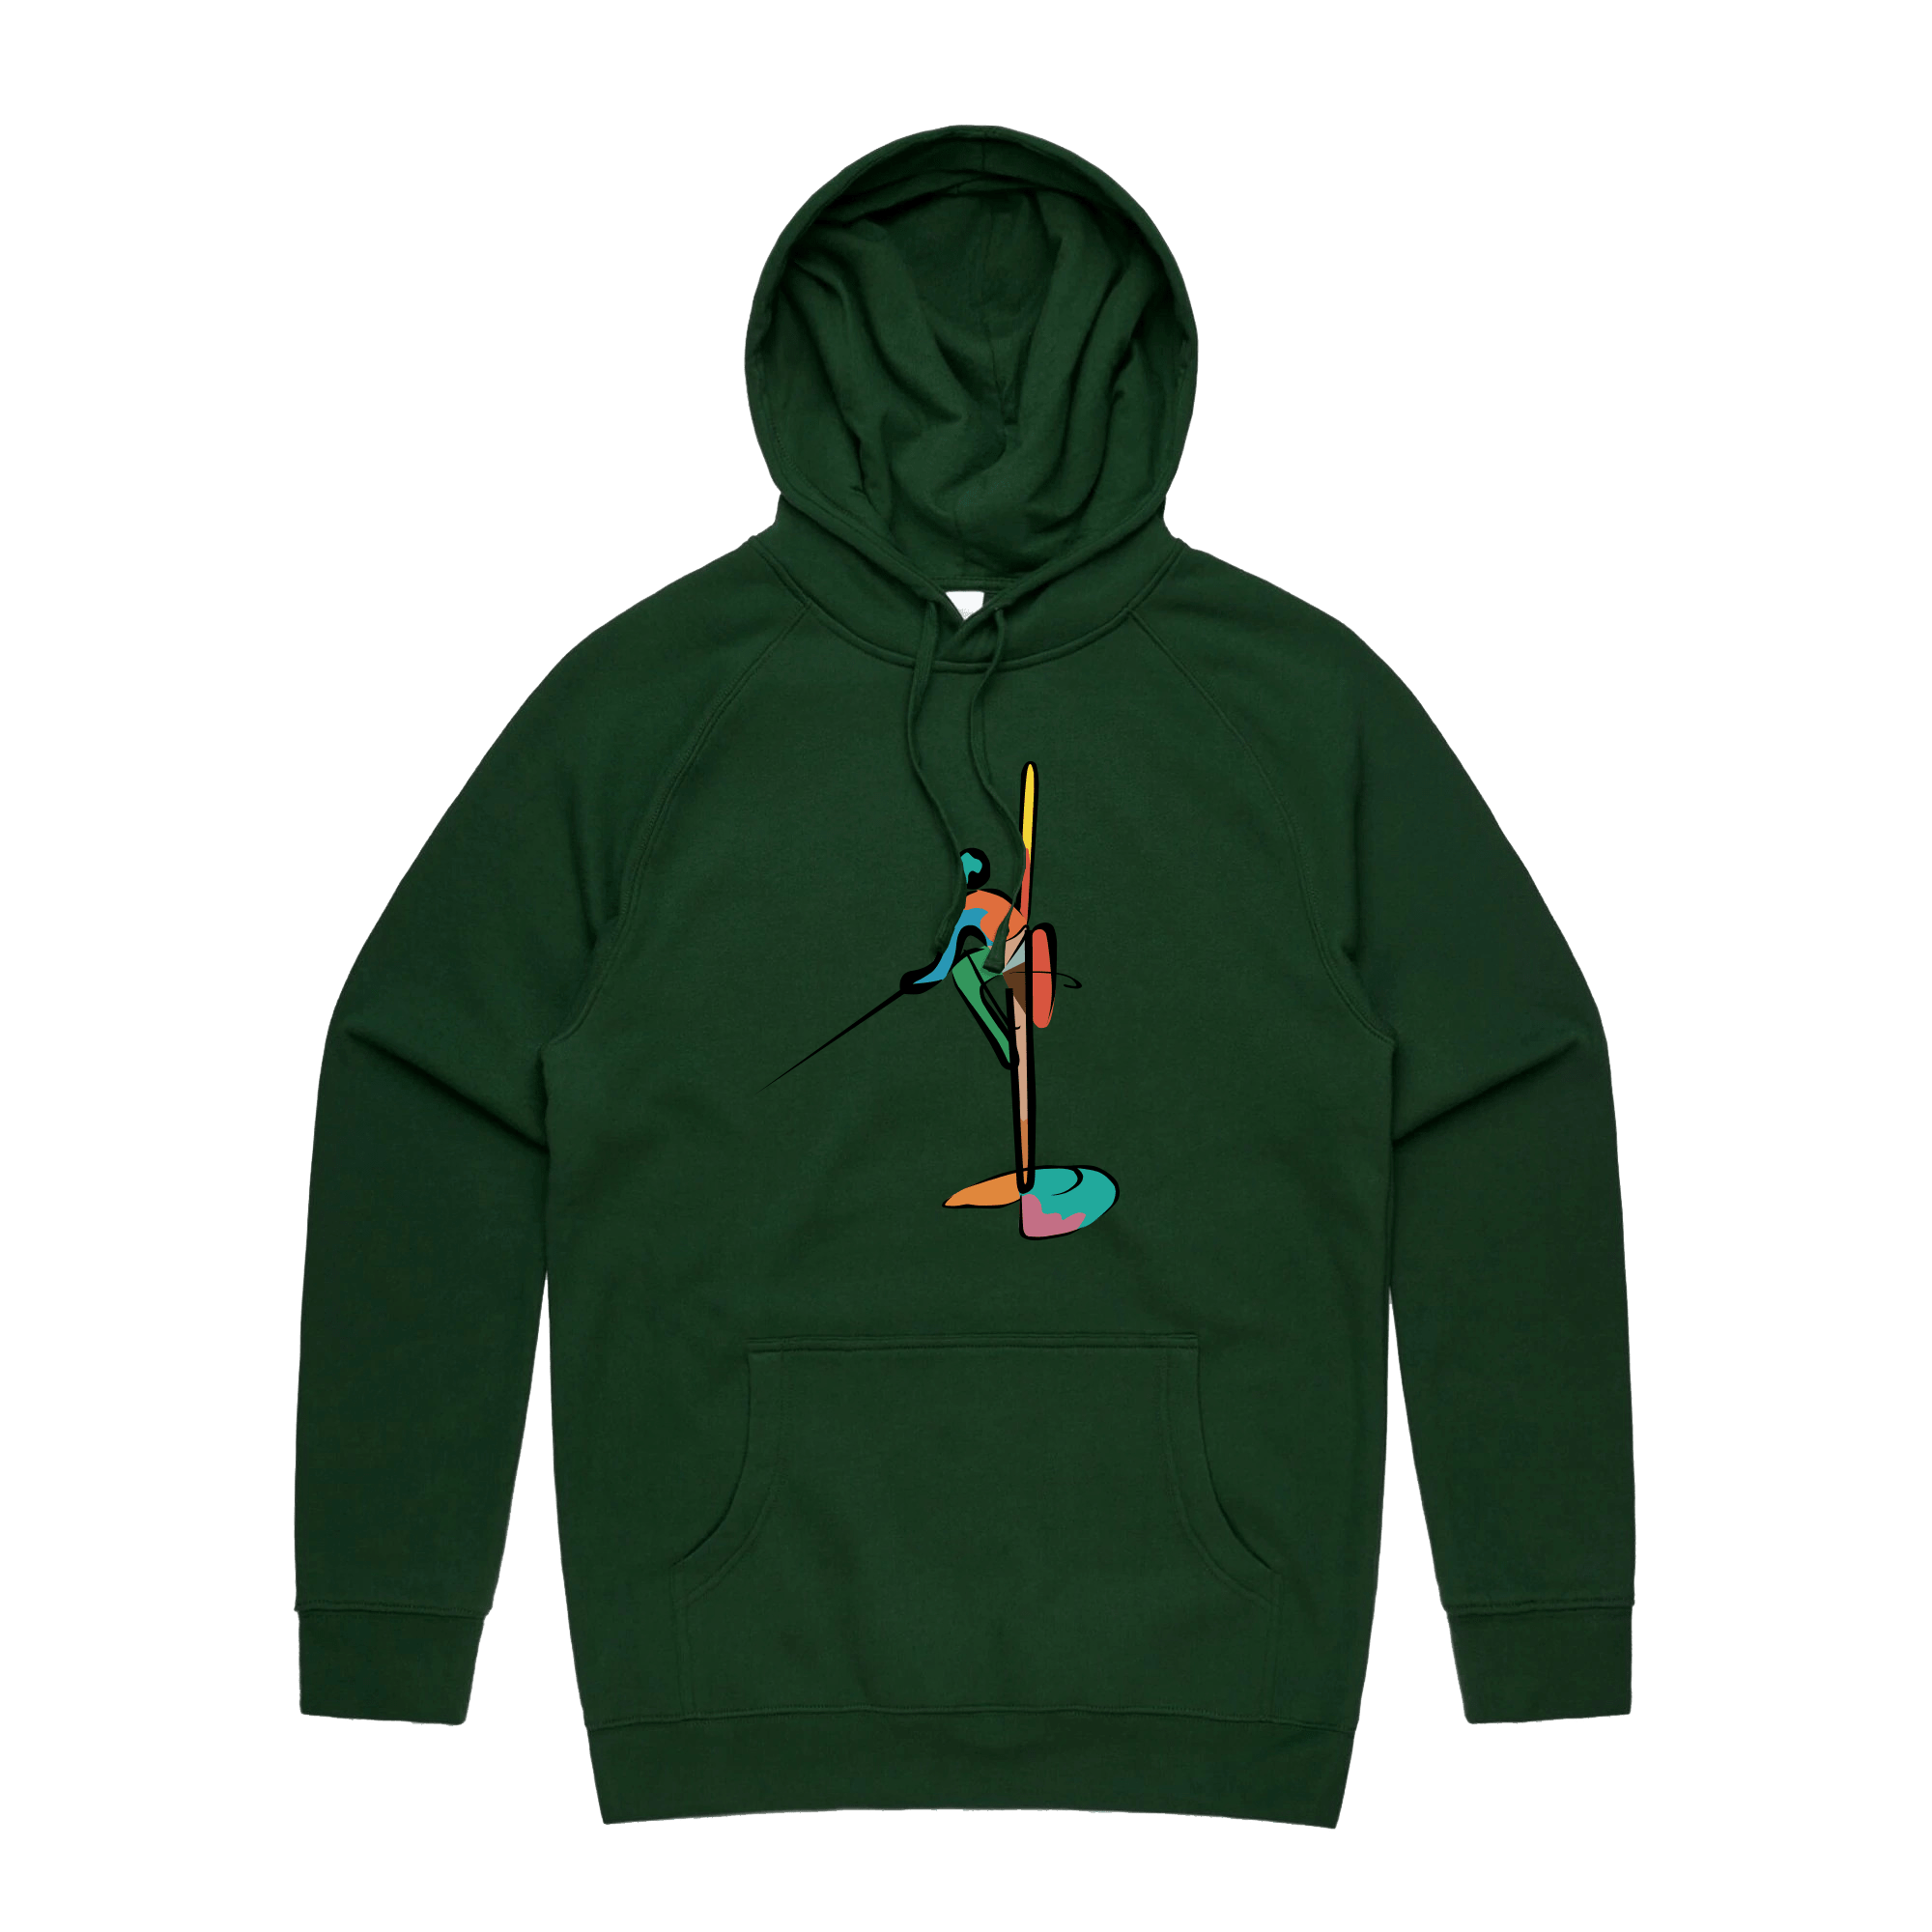 Colourful Fisherman Hoodie - FOREST GREEN